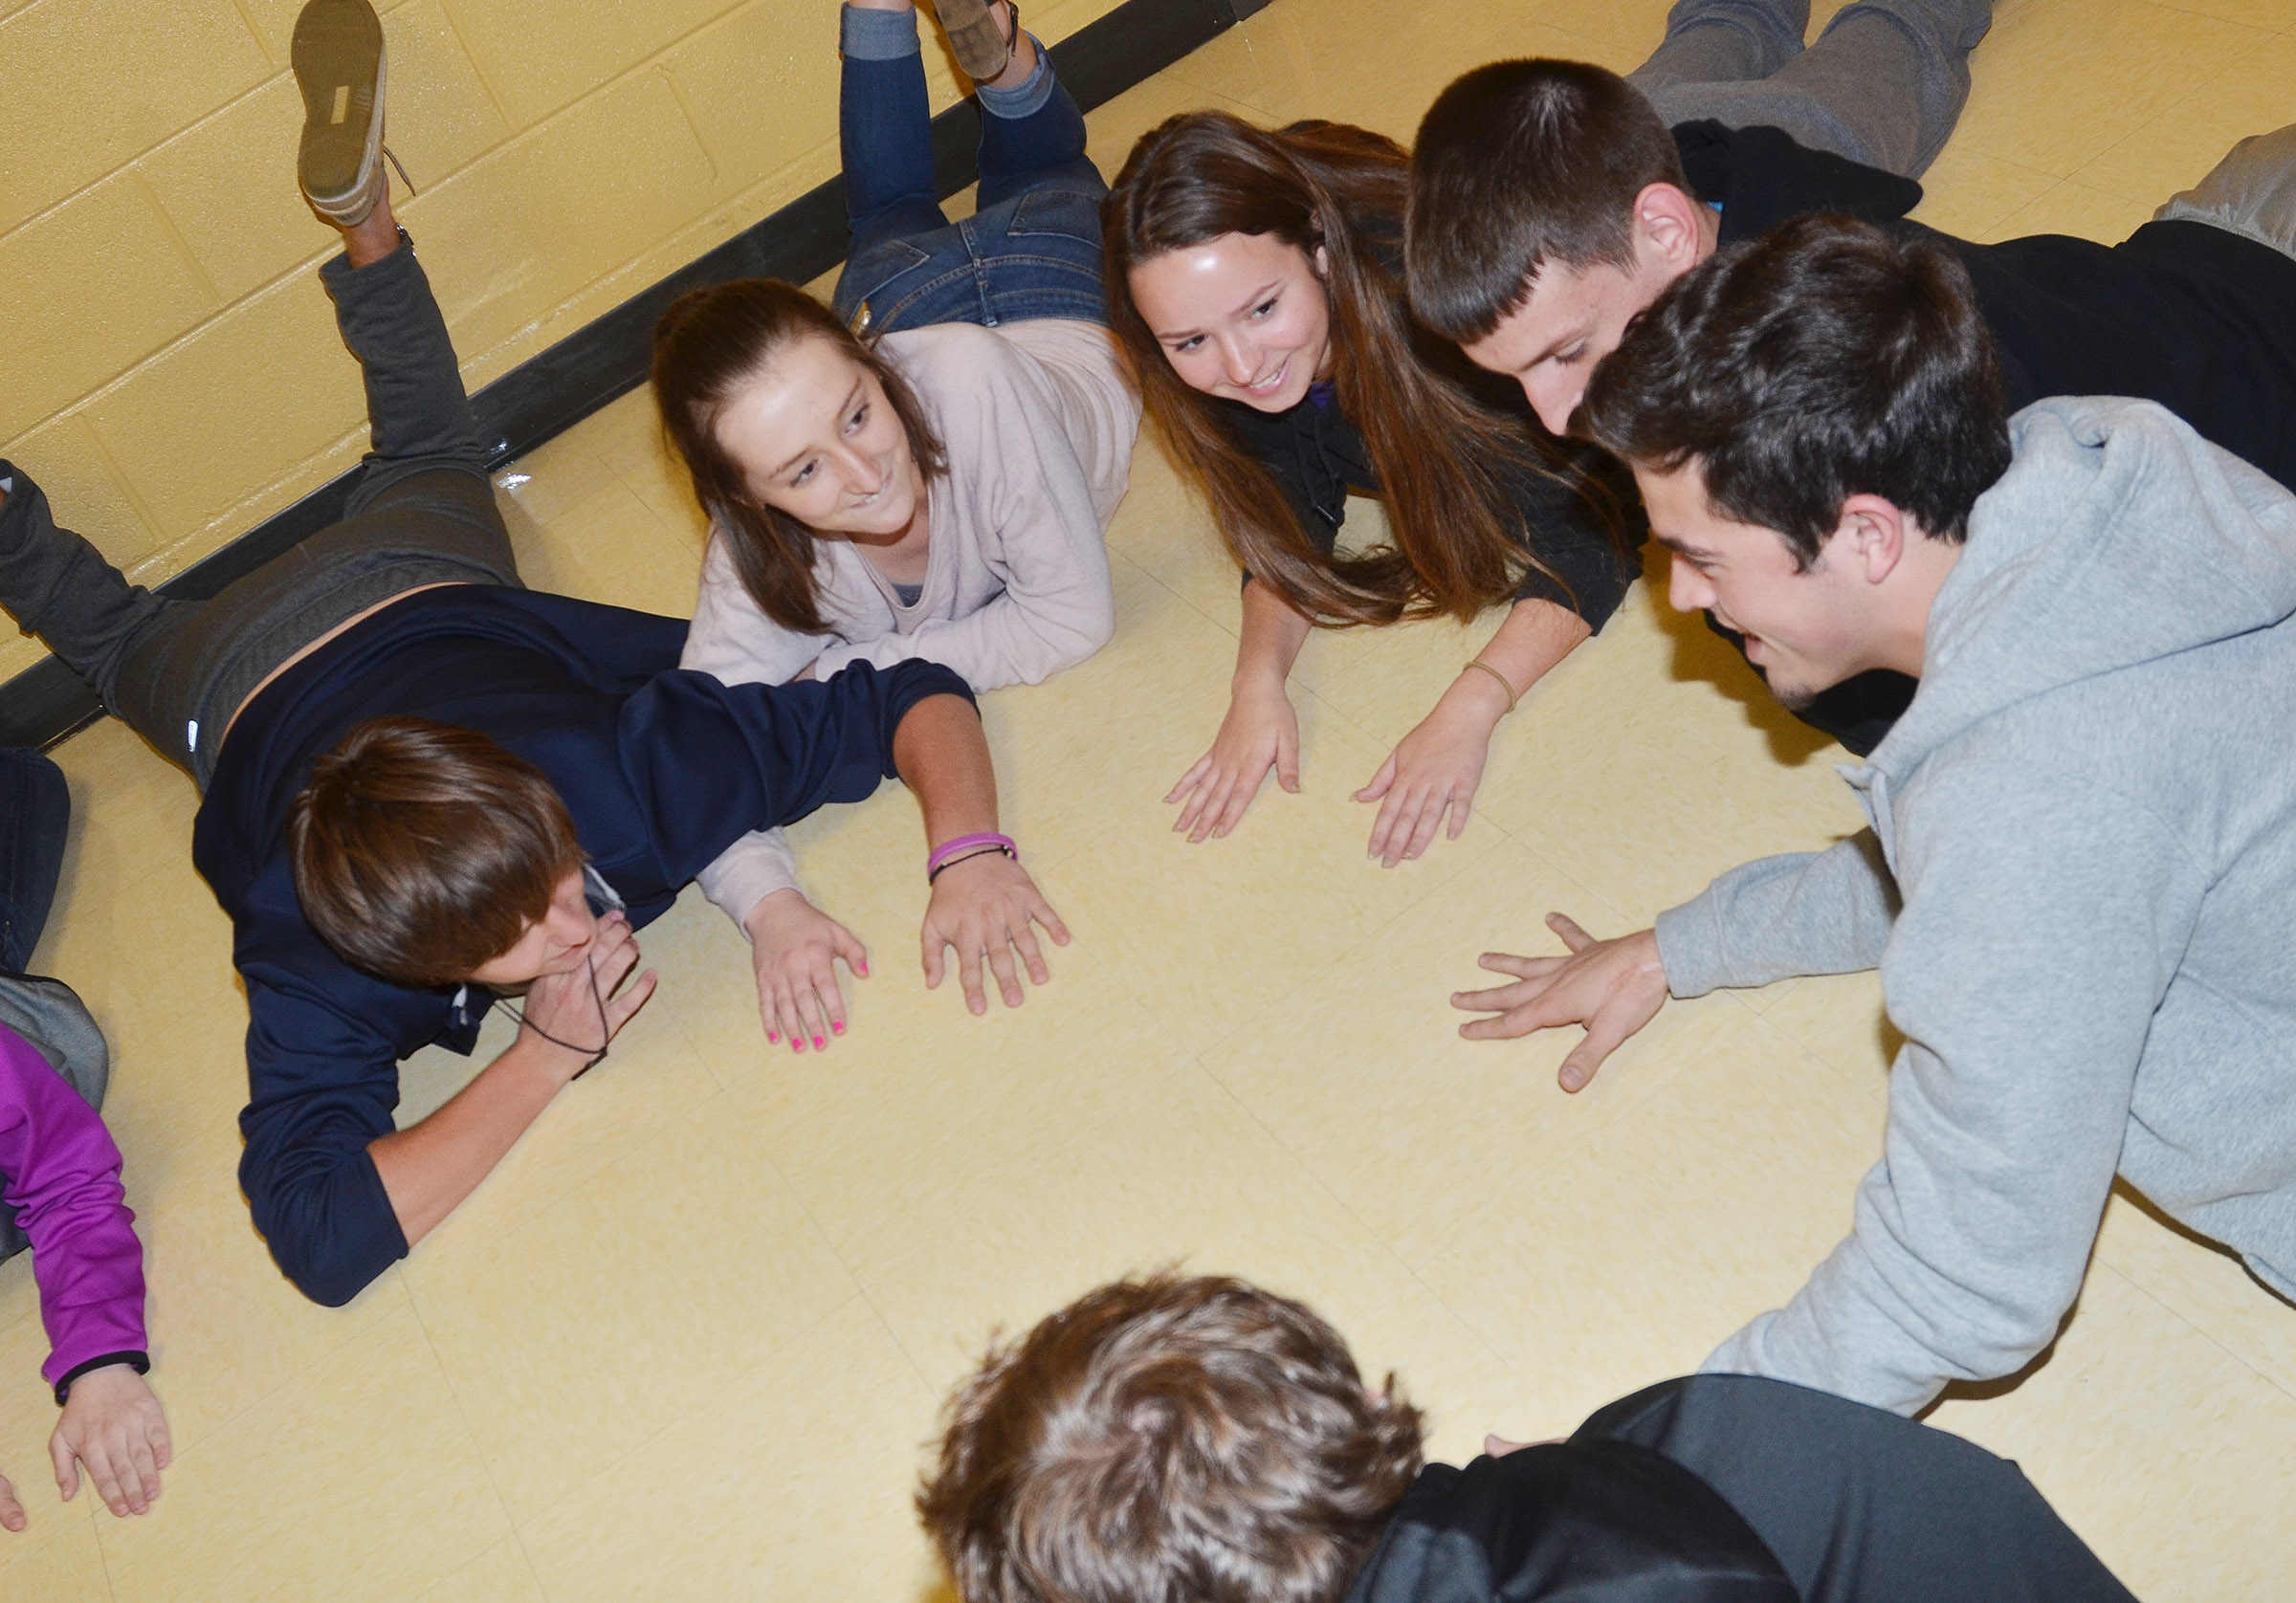 CHS FCA members, clockwise from left, junior Myles Murrell, Samantha Mason, Christa Riggs, Evan McAninch, Ryan Kearney and Lane Bottoms play a concentration icebreaker game.